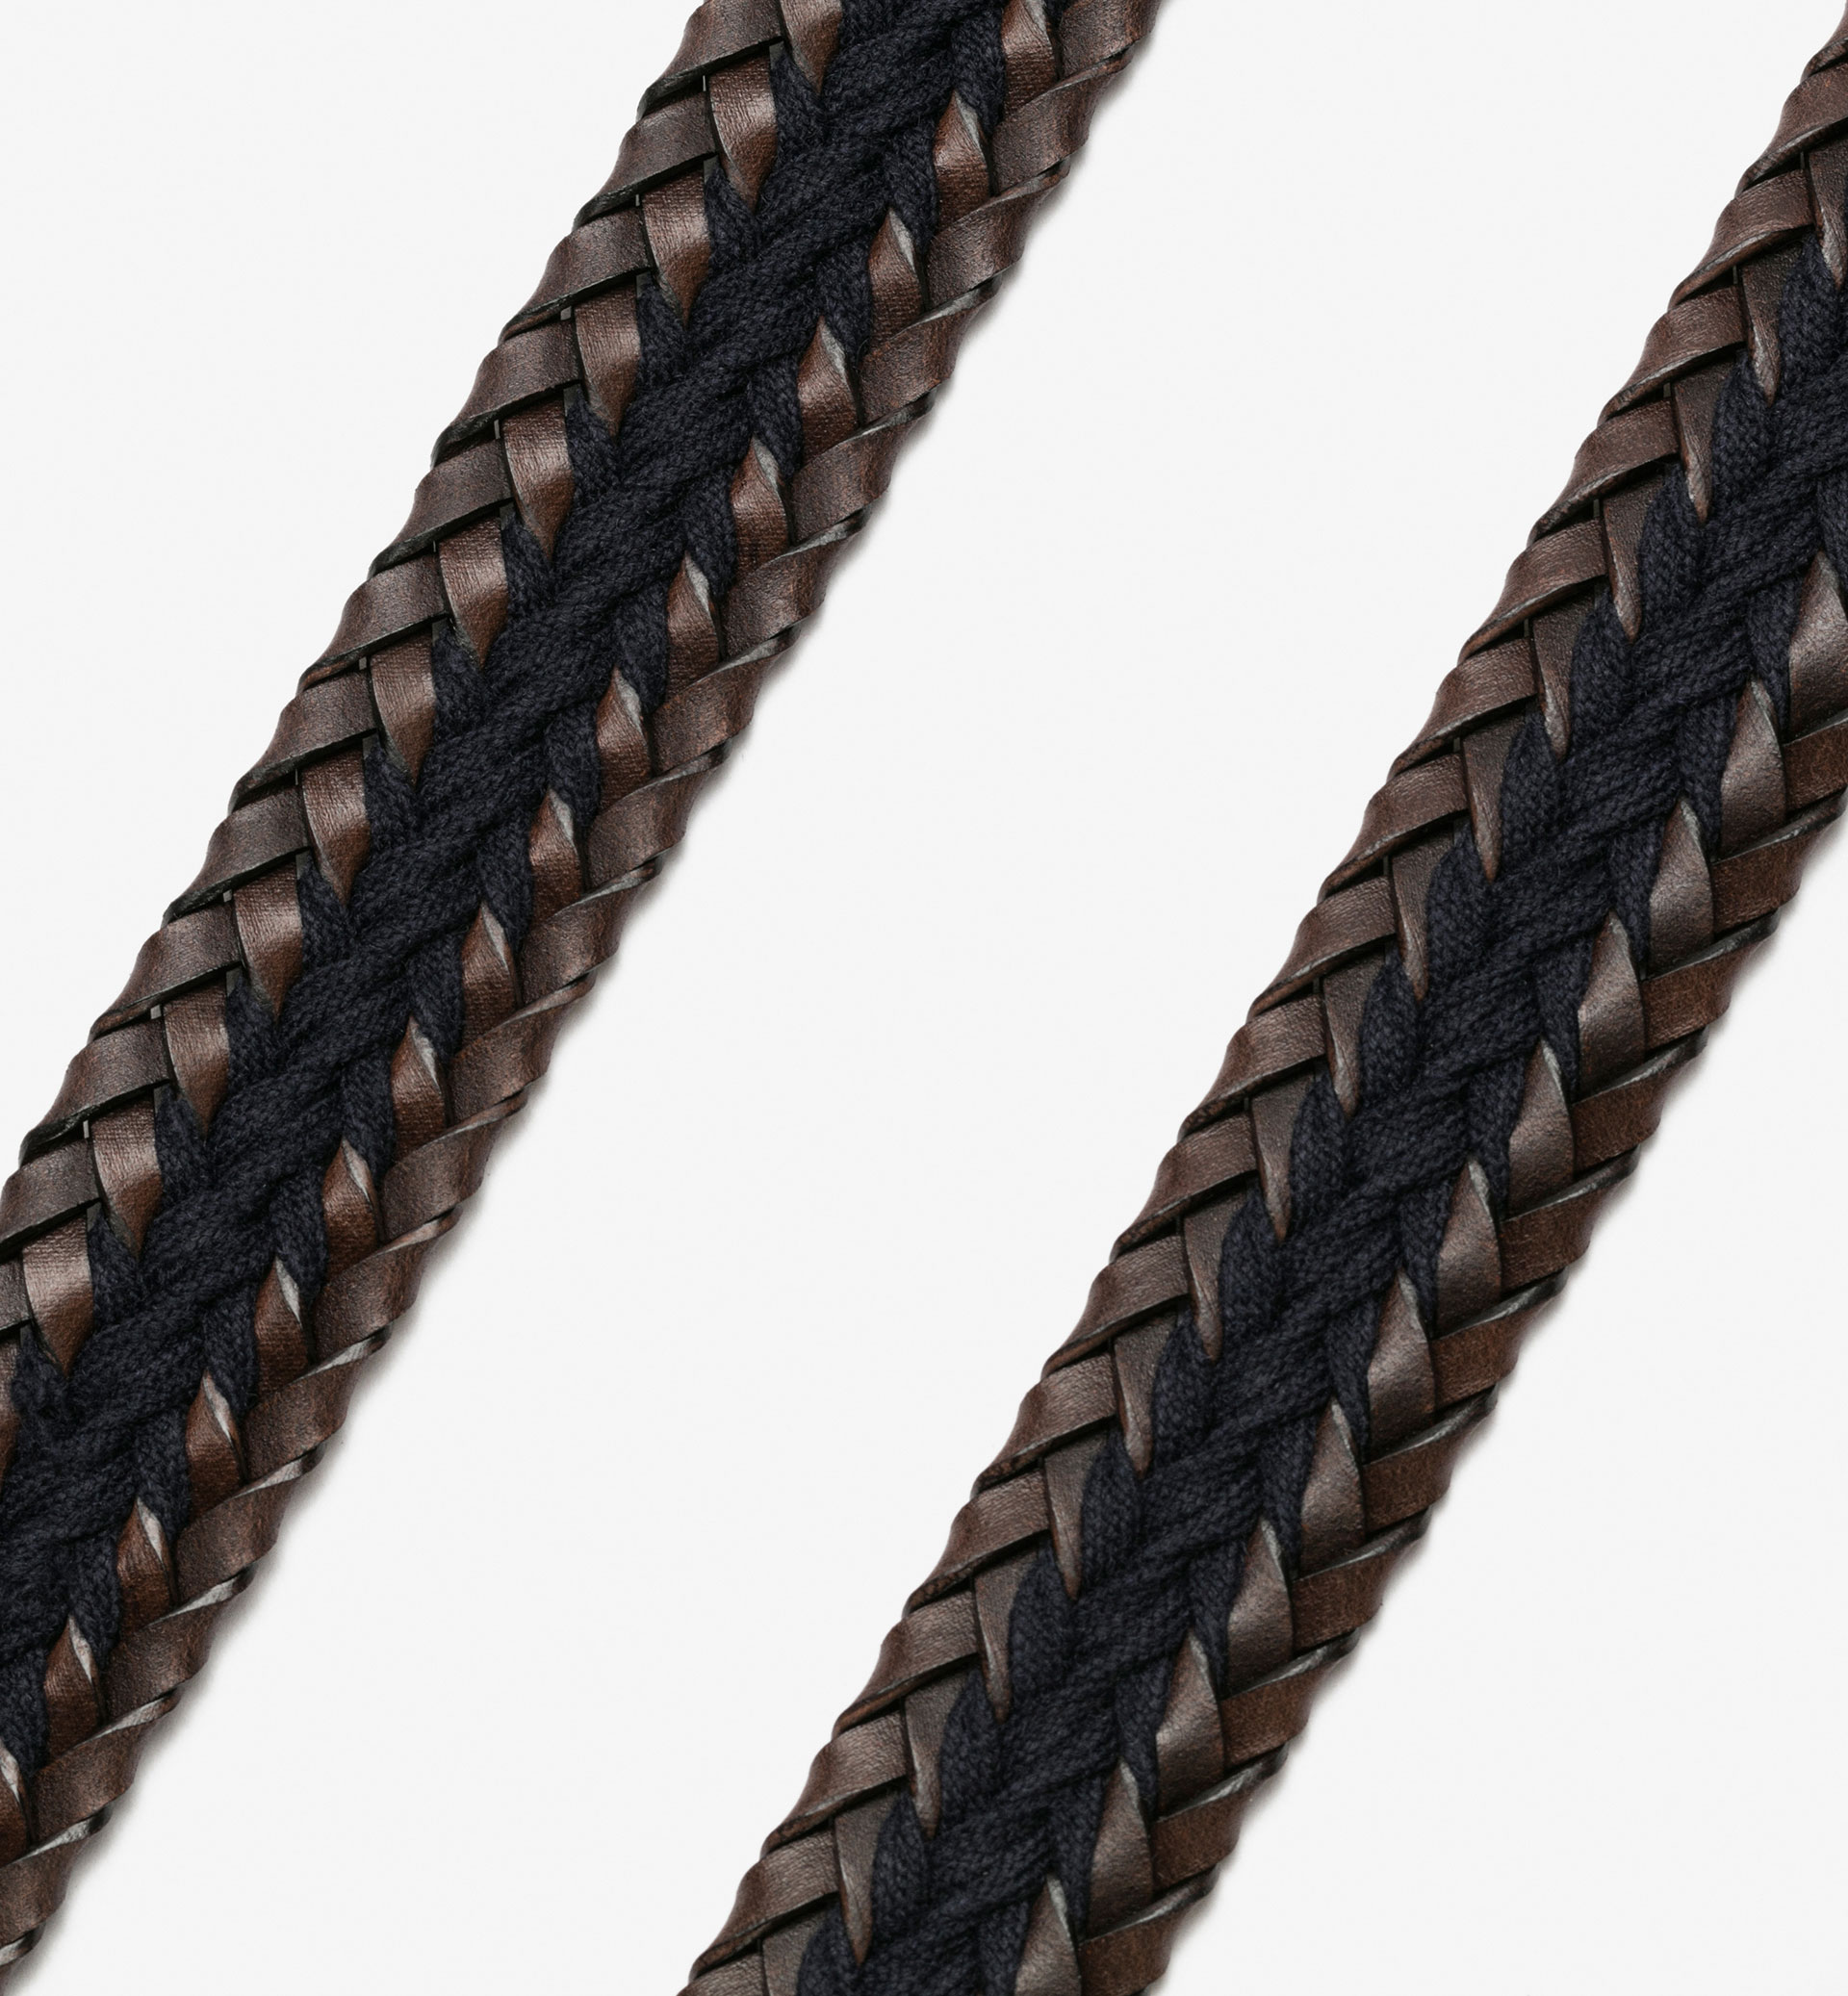 BRAIDED BELT WITH CENTRAL CORD